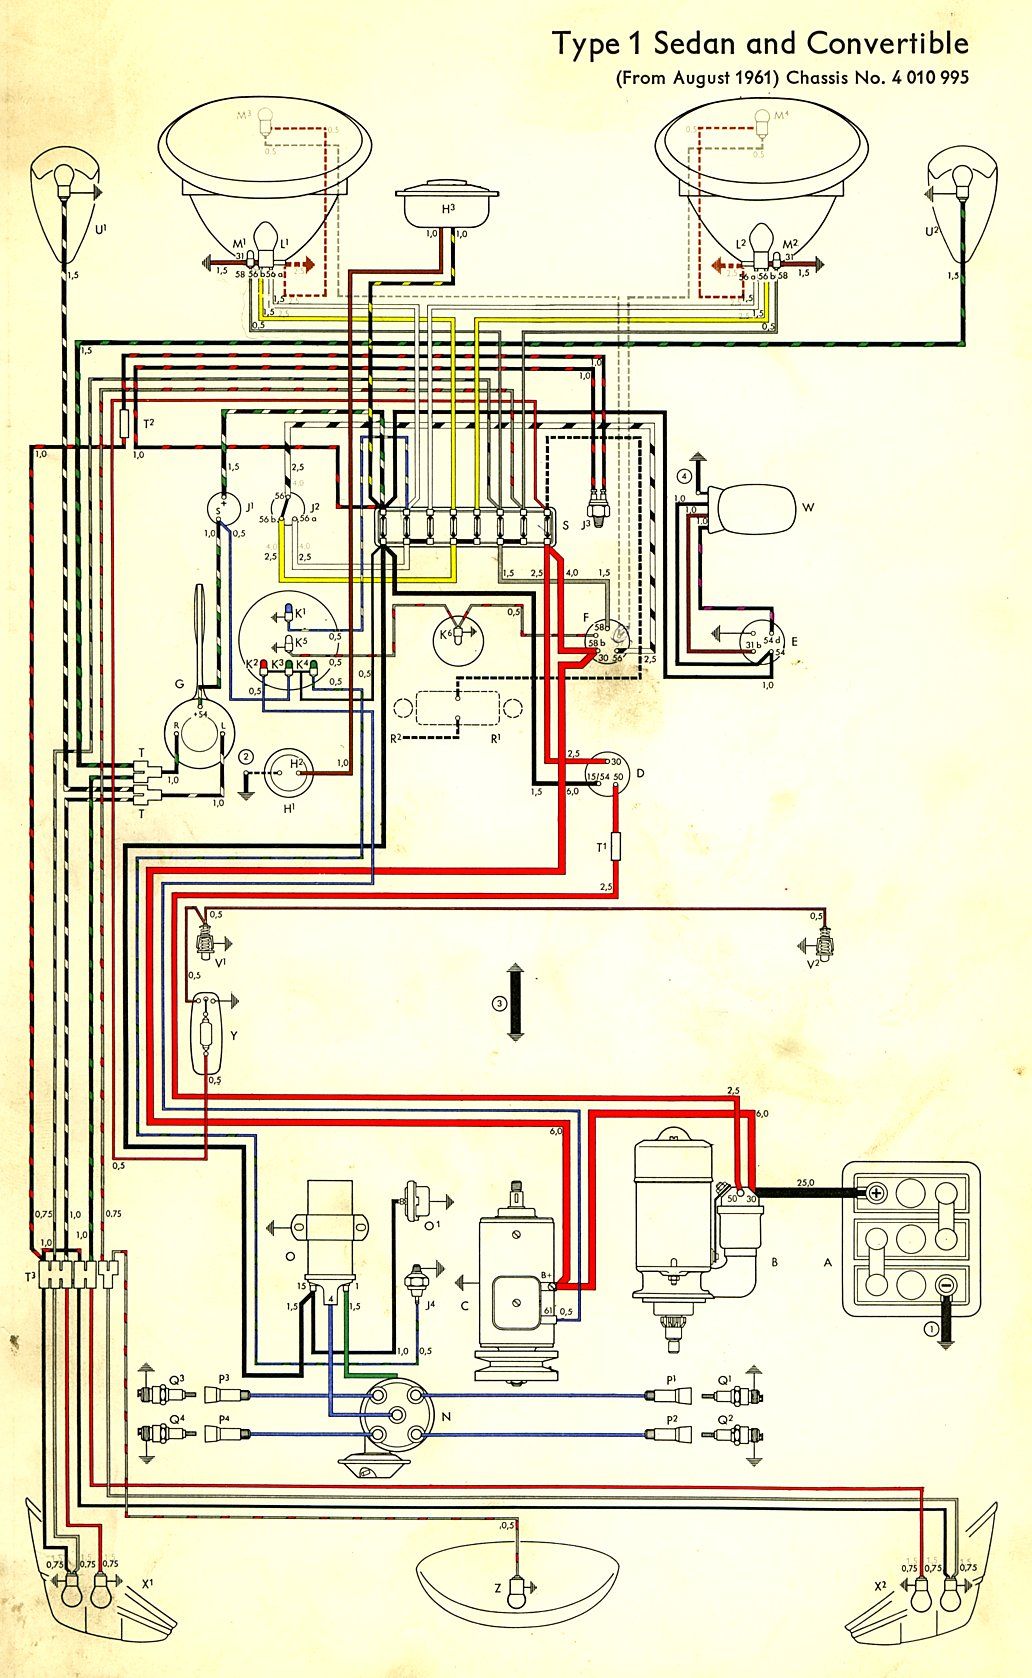 1962 Beetle Wiring Diagram